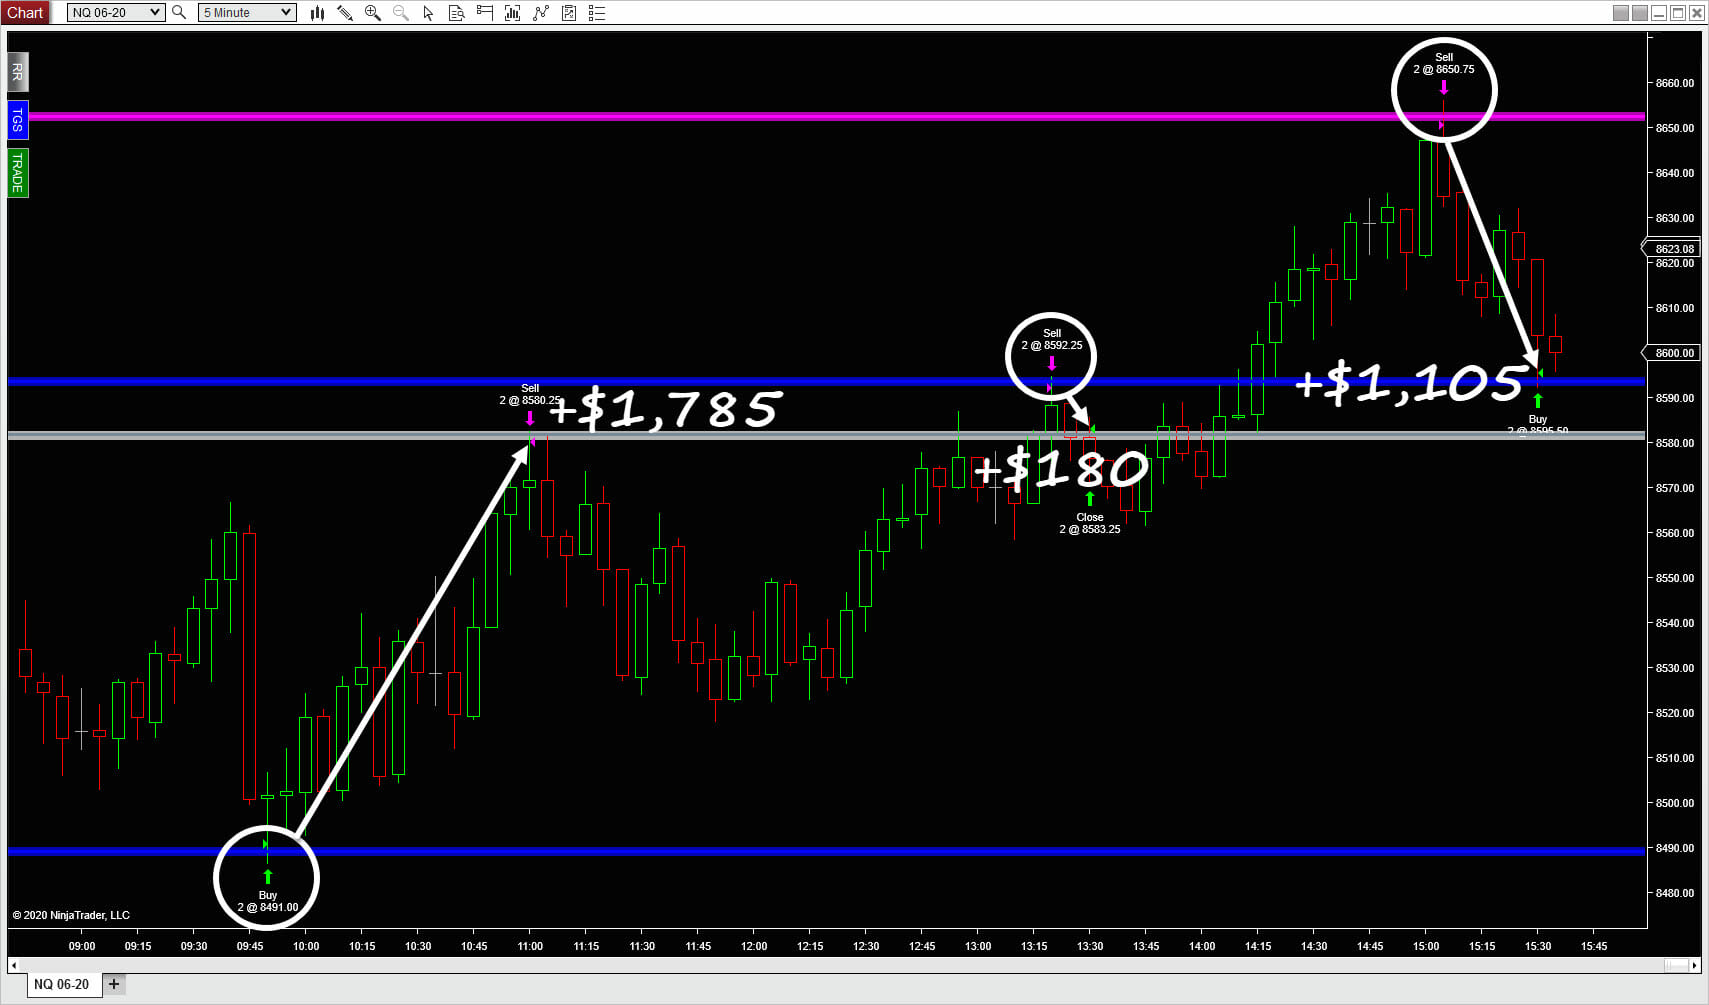 Touches for big profits (over $2,900) on long and short trades on a Nasdaq 5 minute chart.